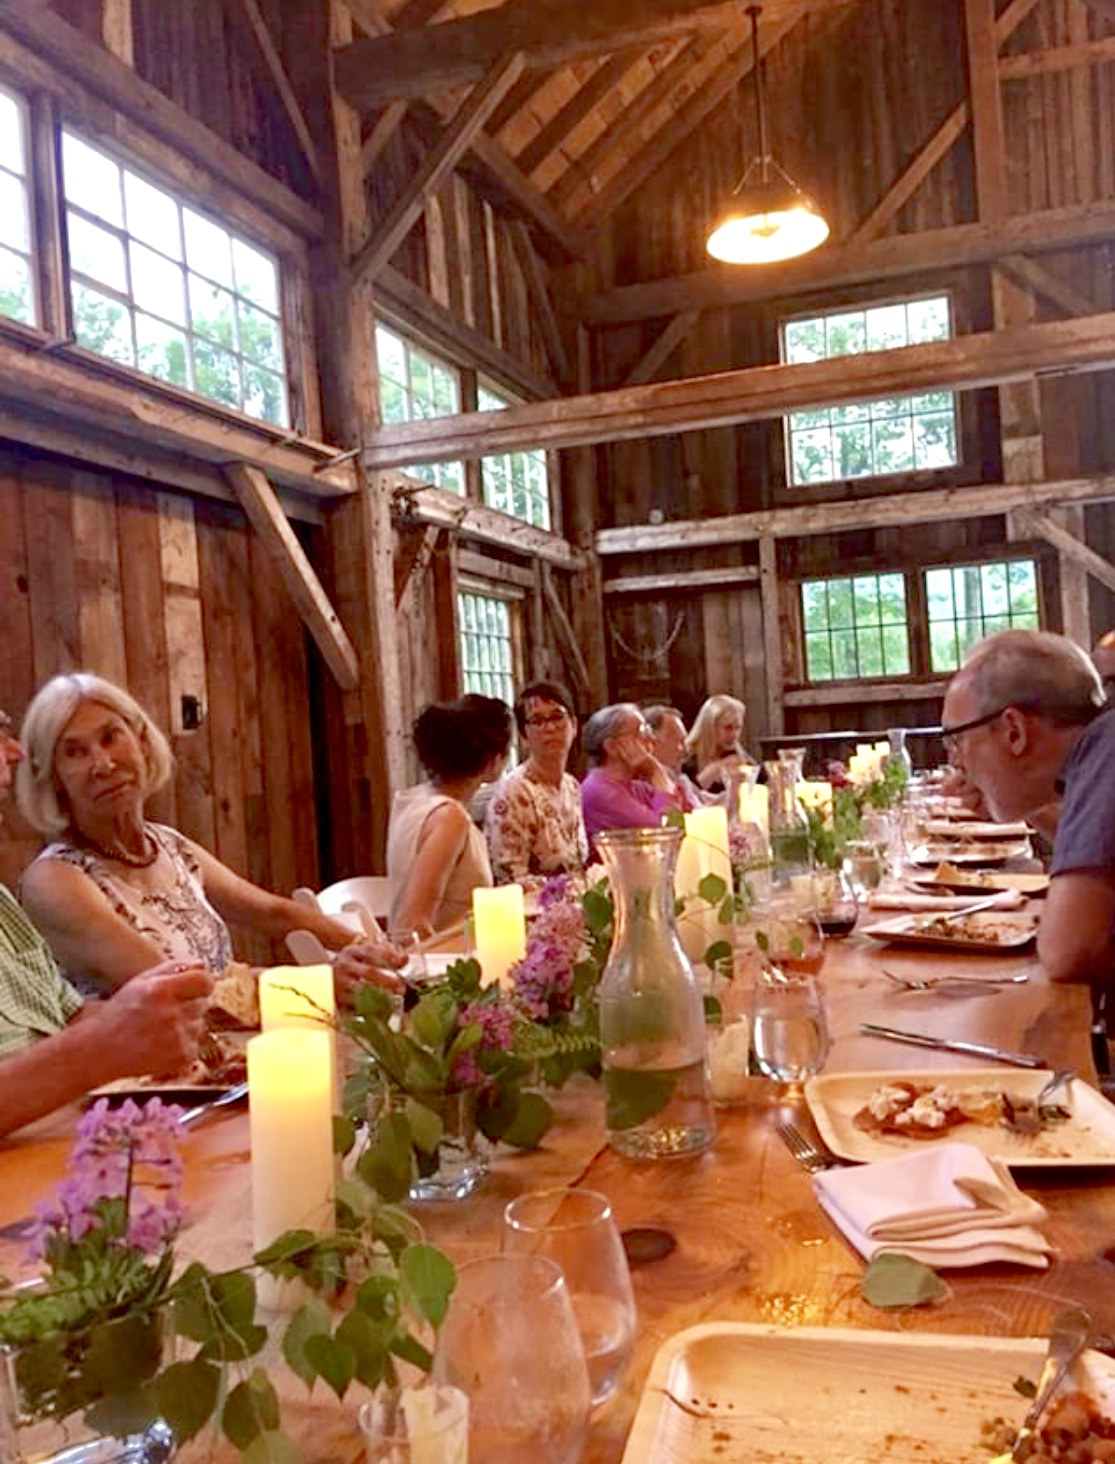 Dinner table barn.jpg